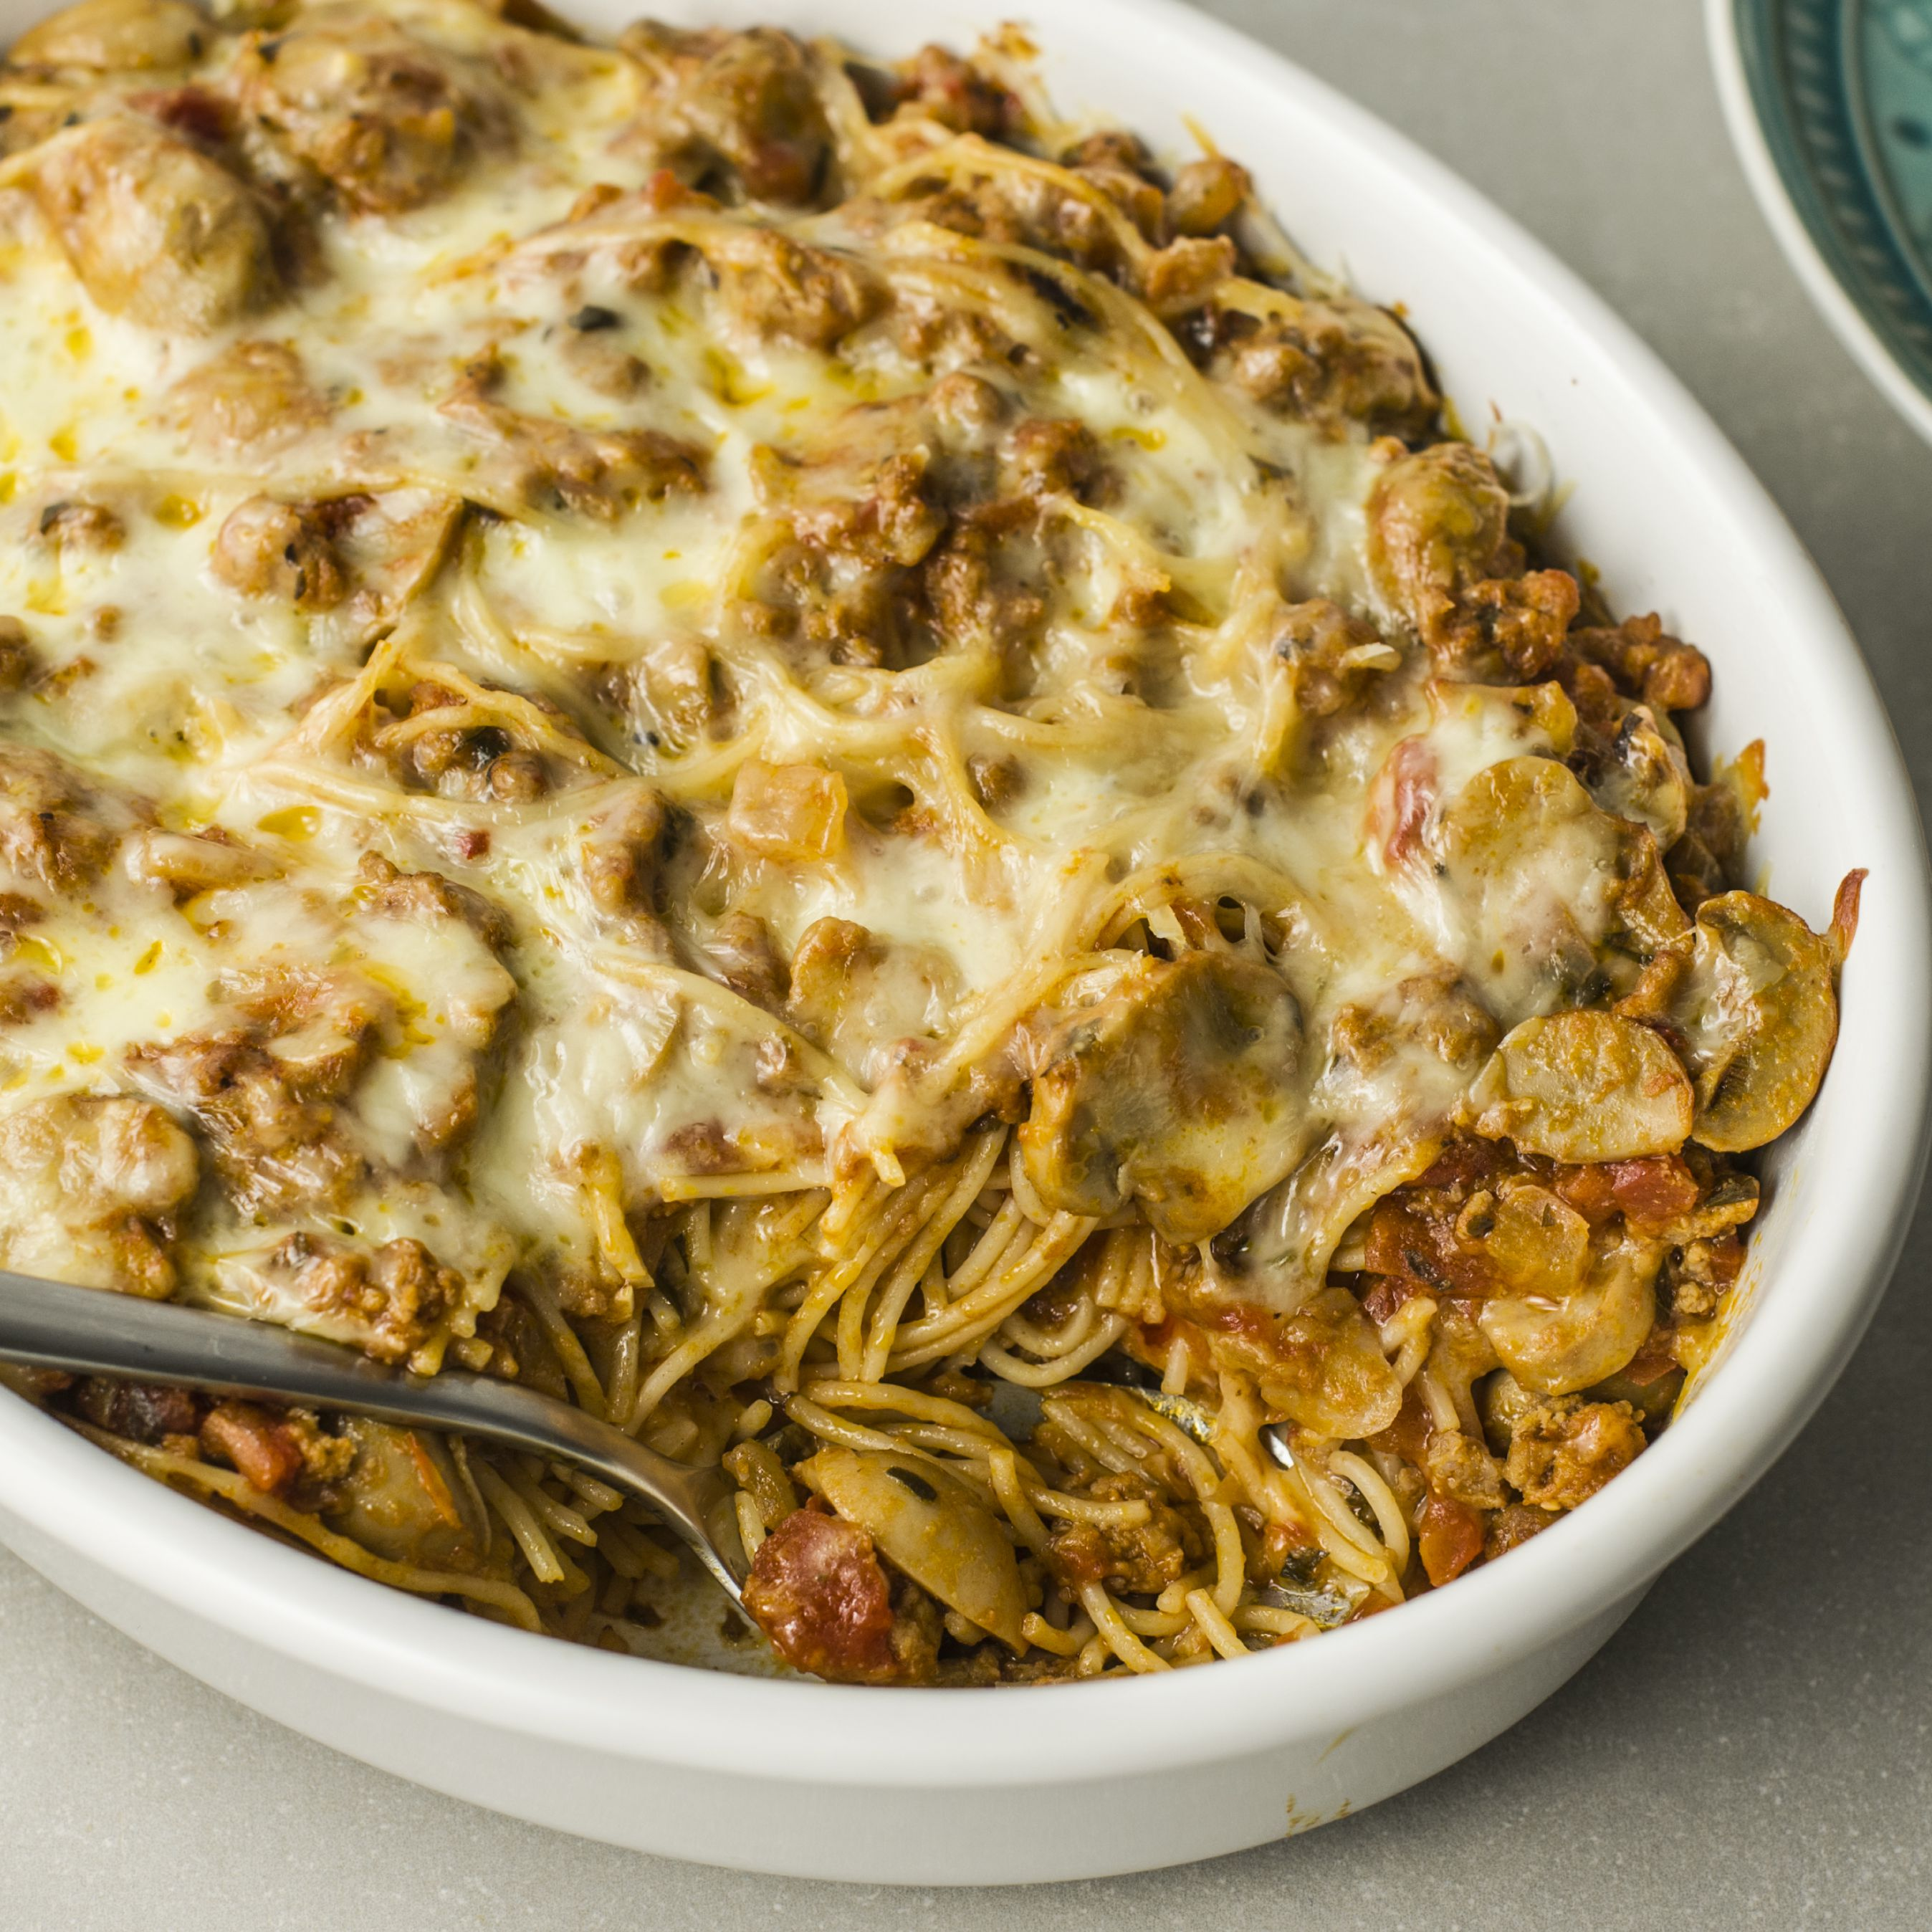 Spaghetti Casserole With Ground Beef and Cheese